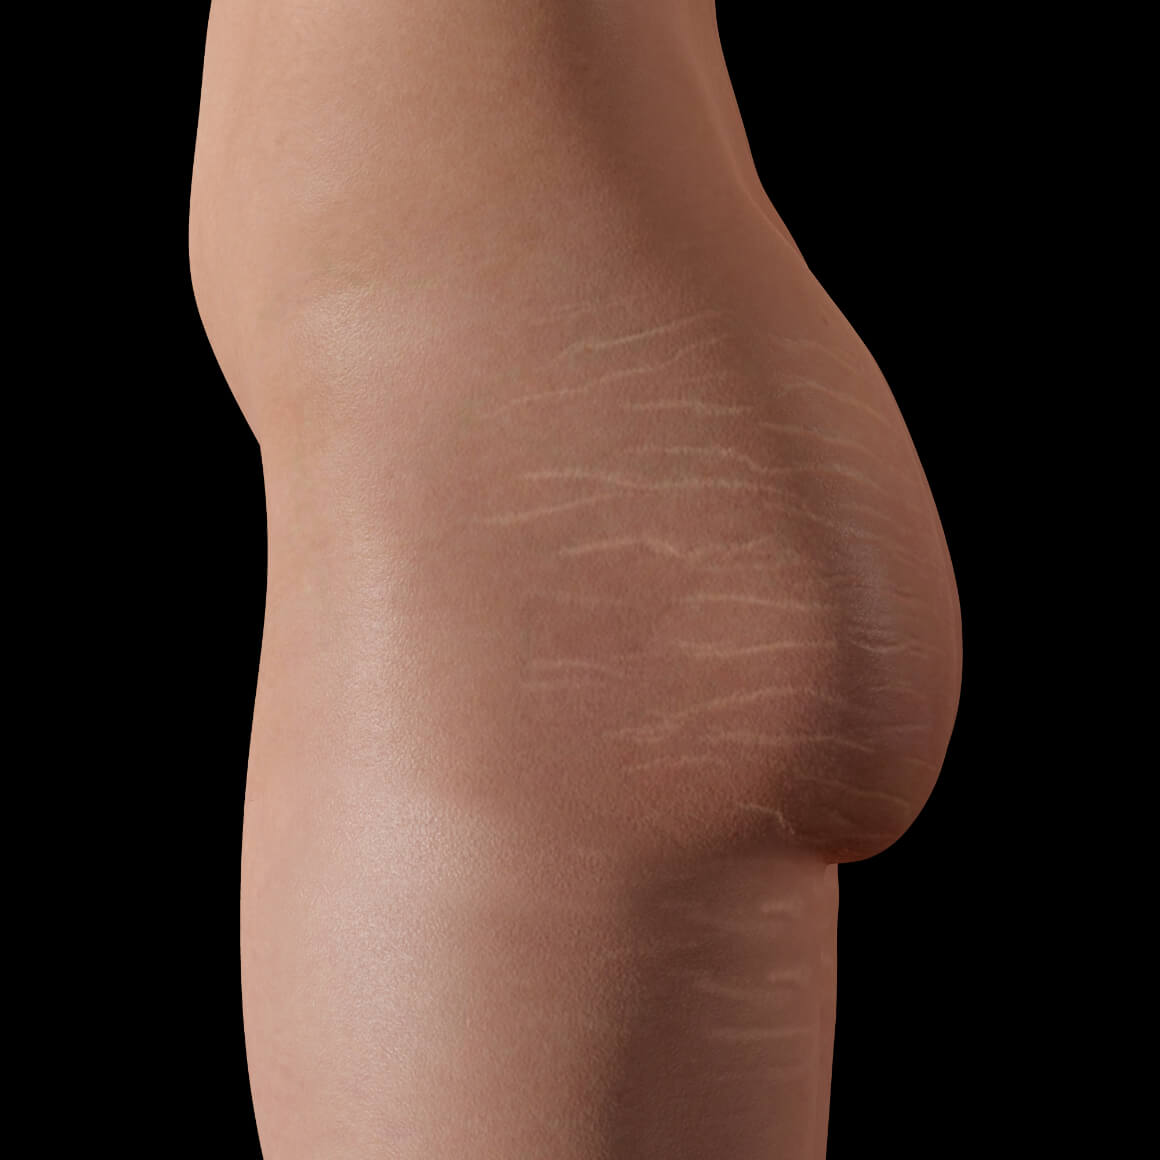 Female patient from Clinique Chloé positioned sideways with stretch marks on her buttocks and thighs